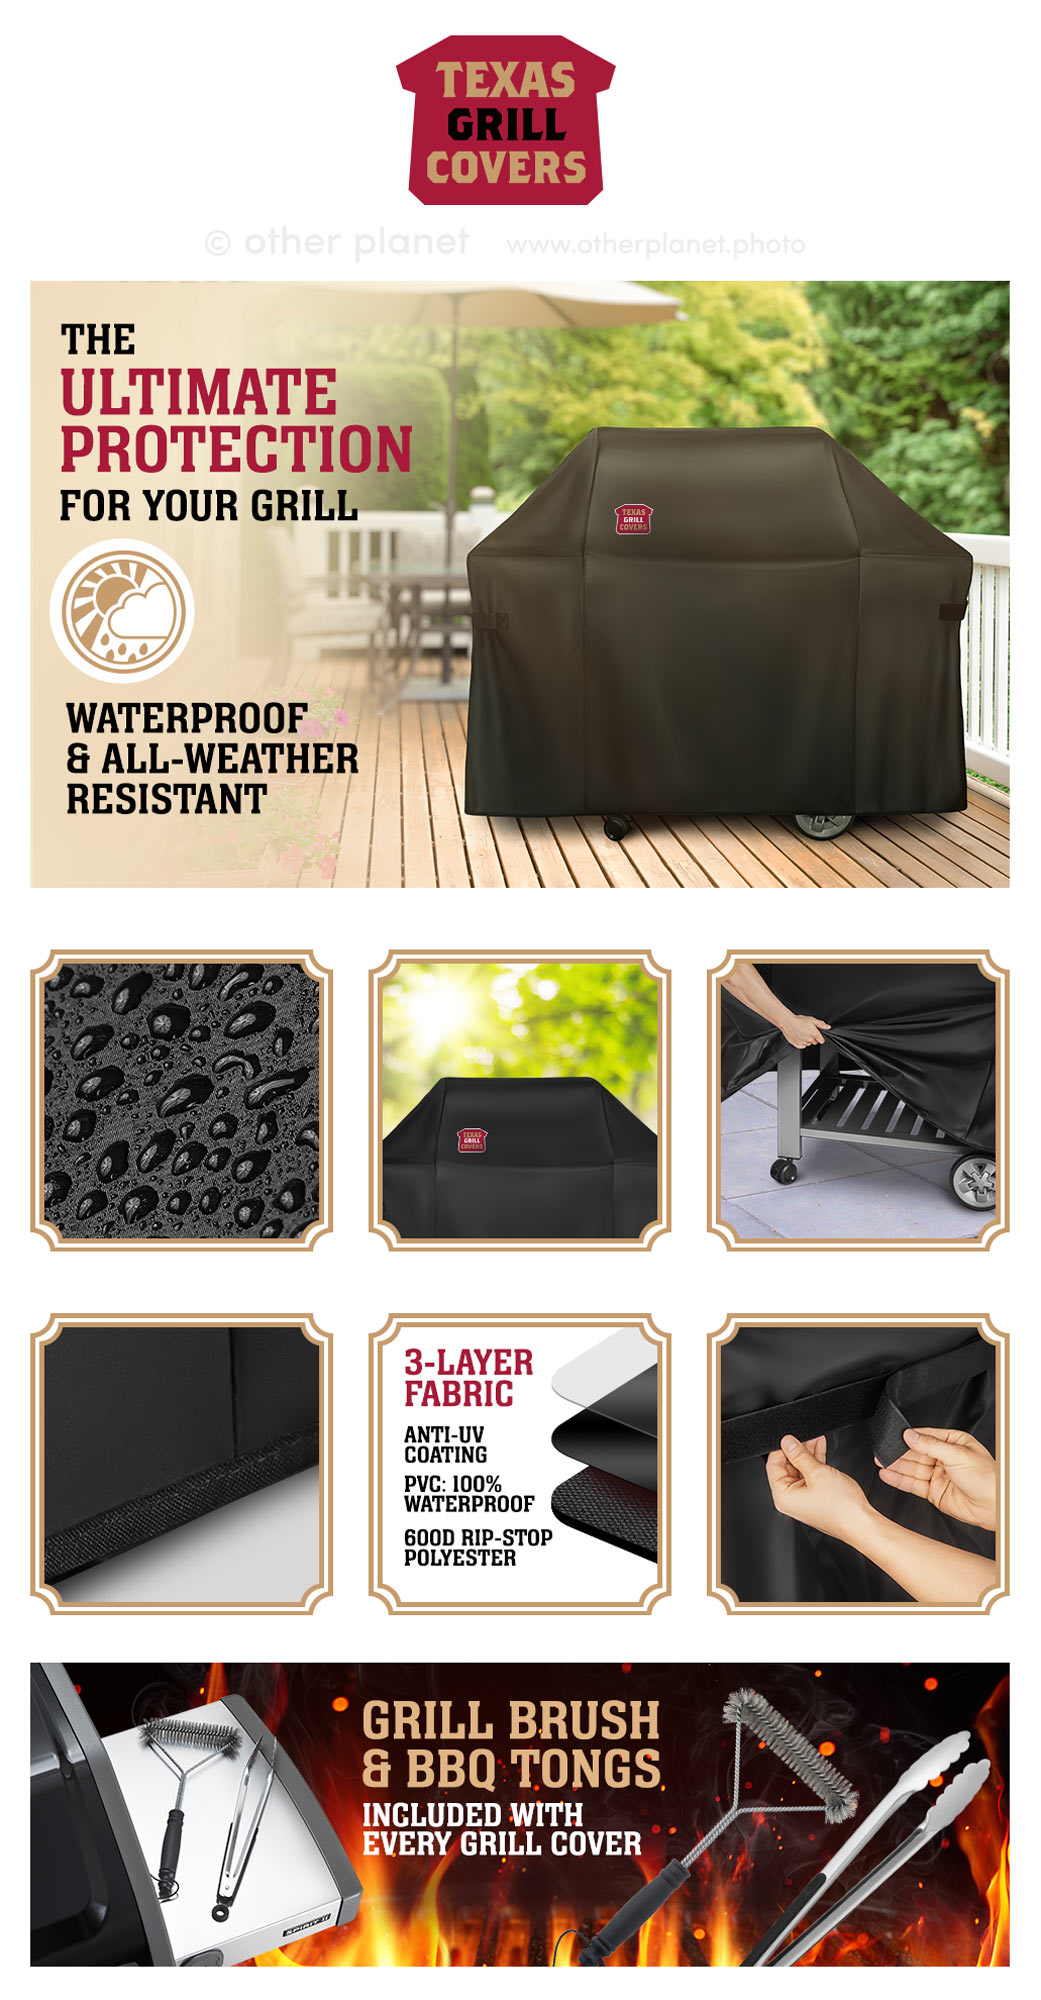 professional amazon photos for grill cover EBC images